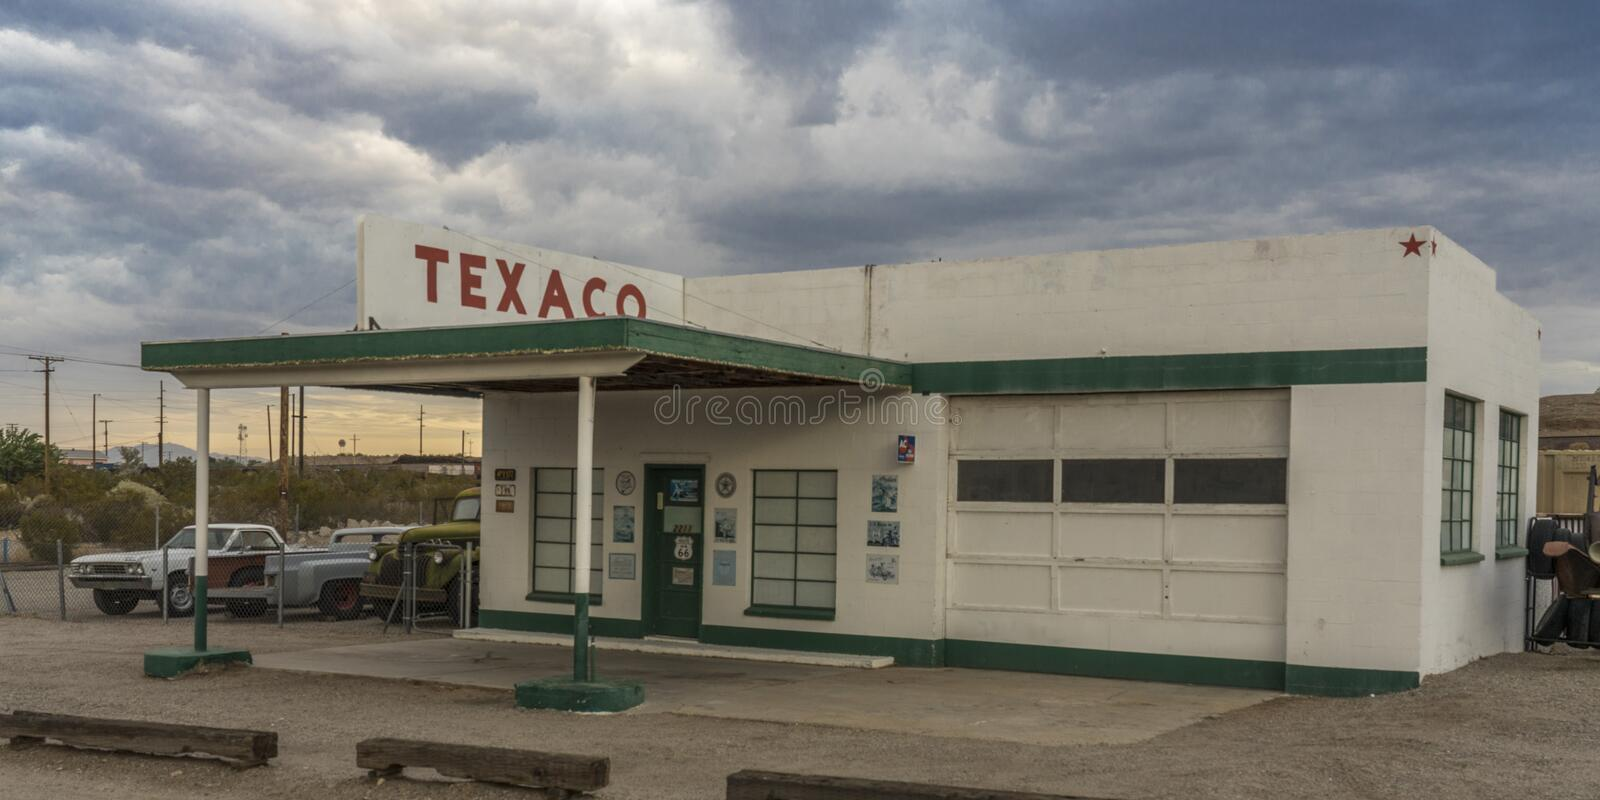 JULY 24, 2019 - OLD ROUTE 66, ARIZONA AND CALIFORNIA , USA - Old Route 66 shows Texaco station and signs along highway in Arizona  stock photo